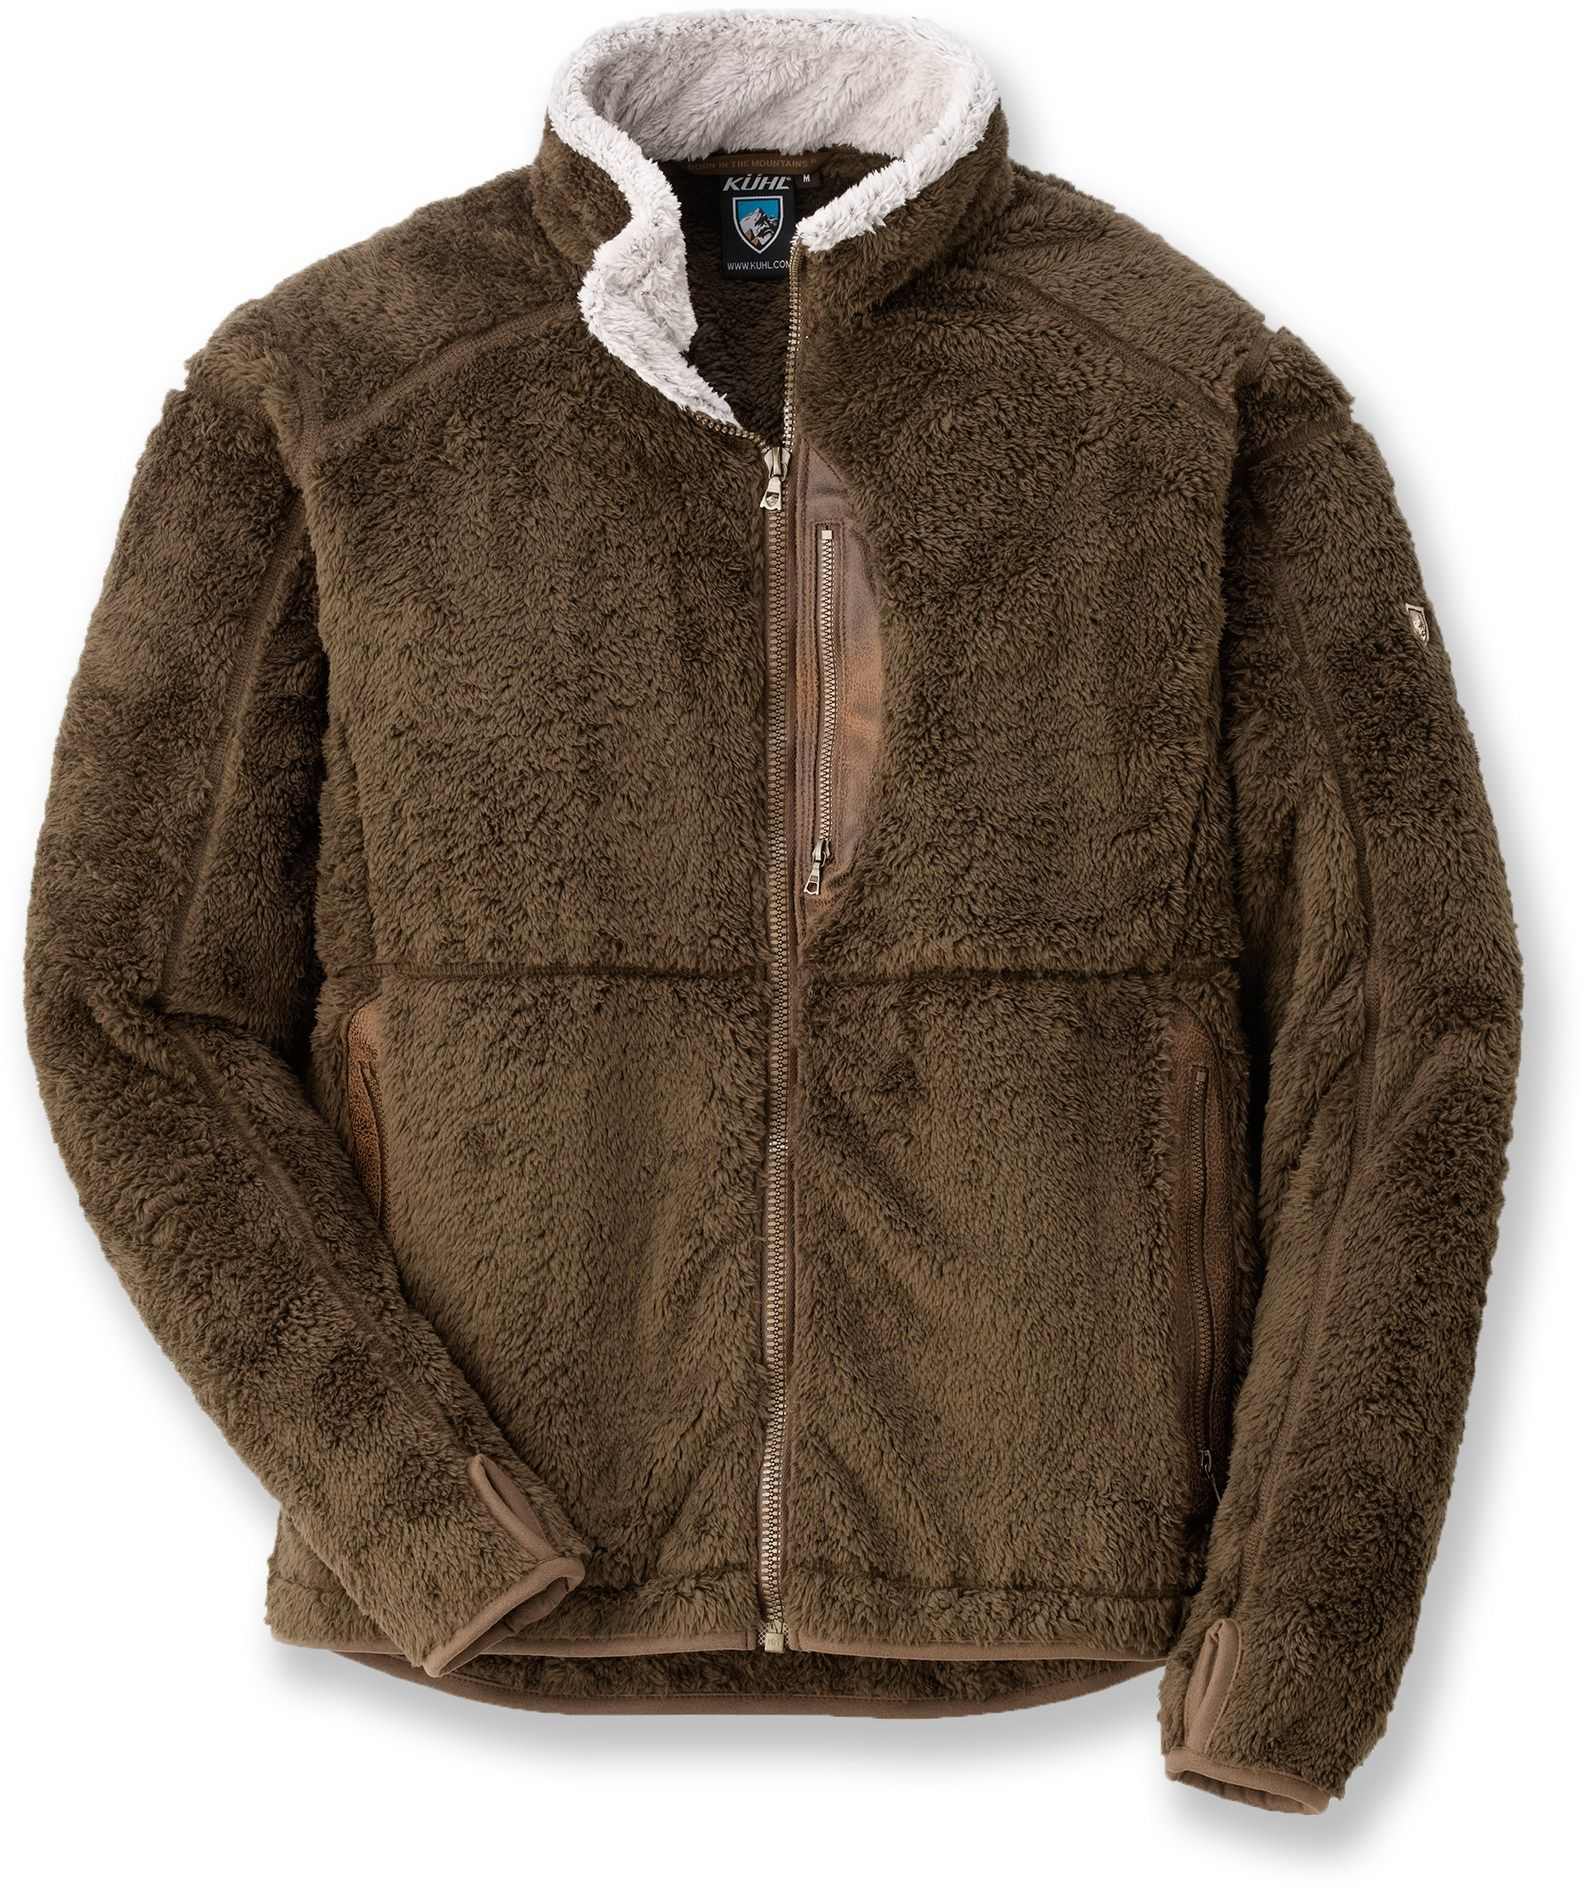 KUHL Jak Rabbit Fleece Jacket - Men's | REI Co-op | Gift ...